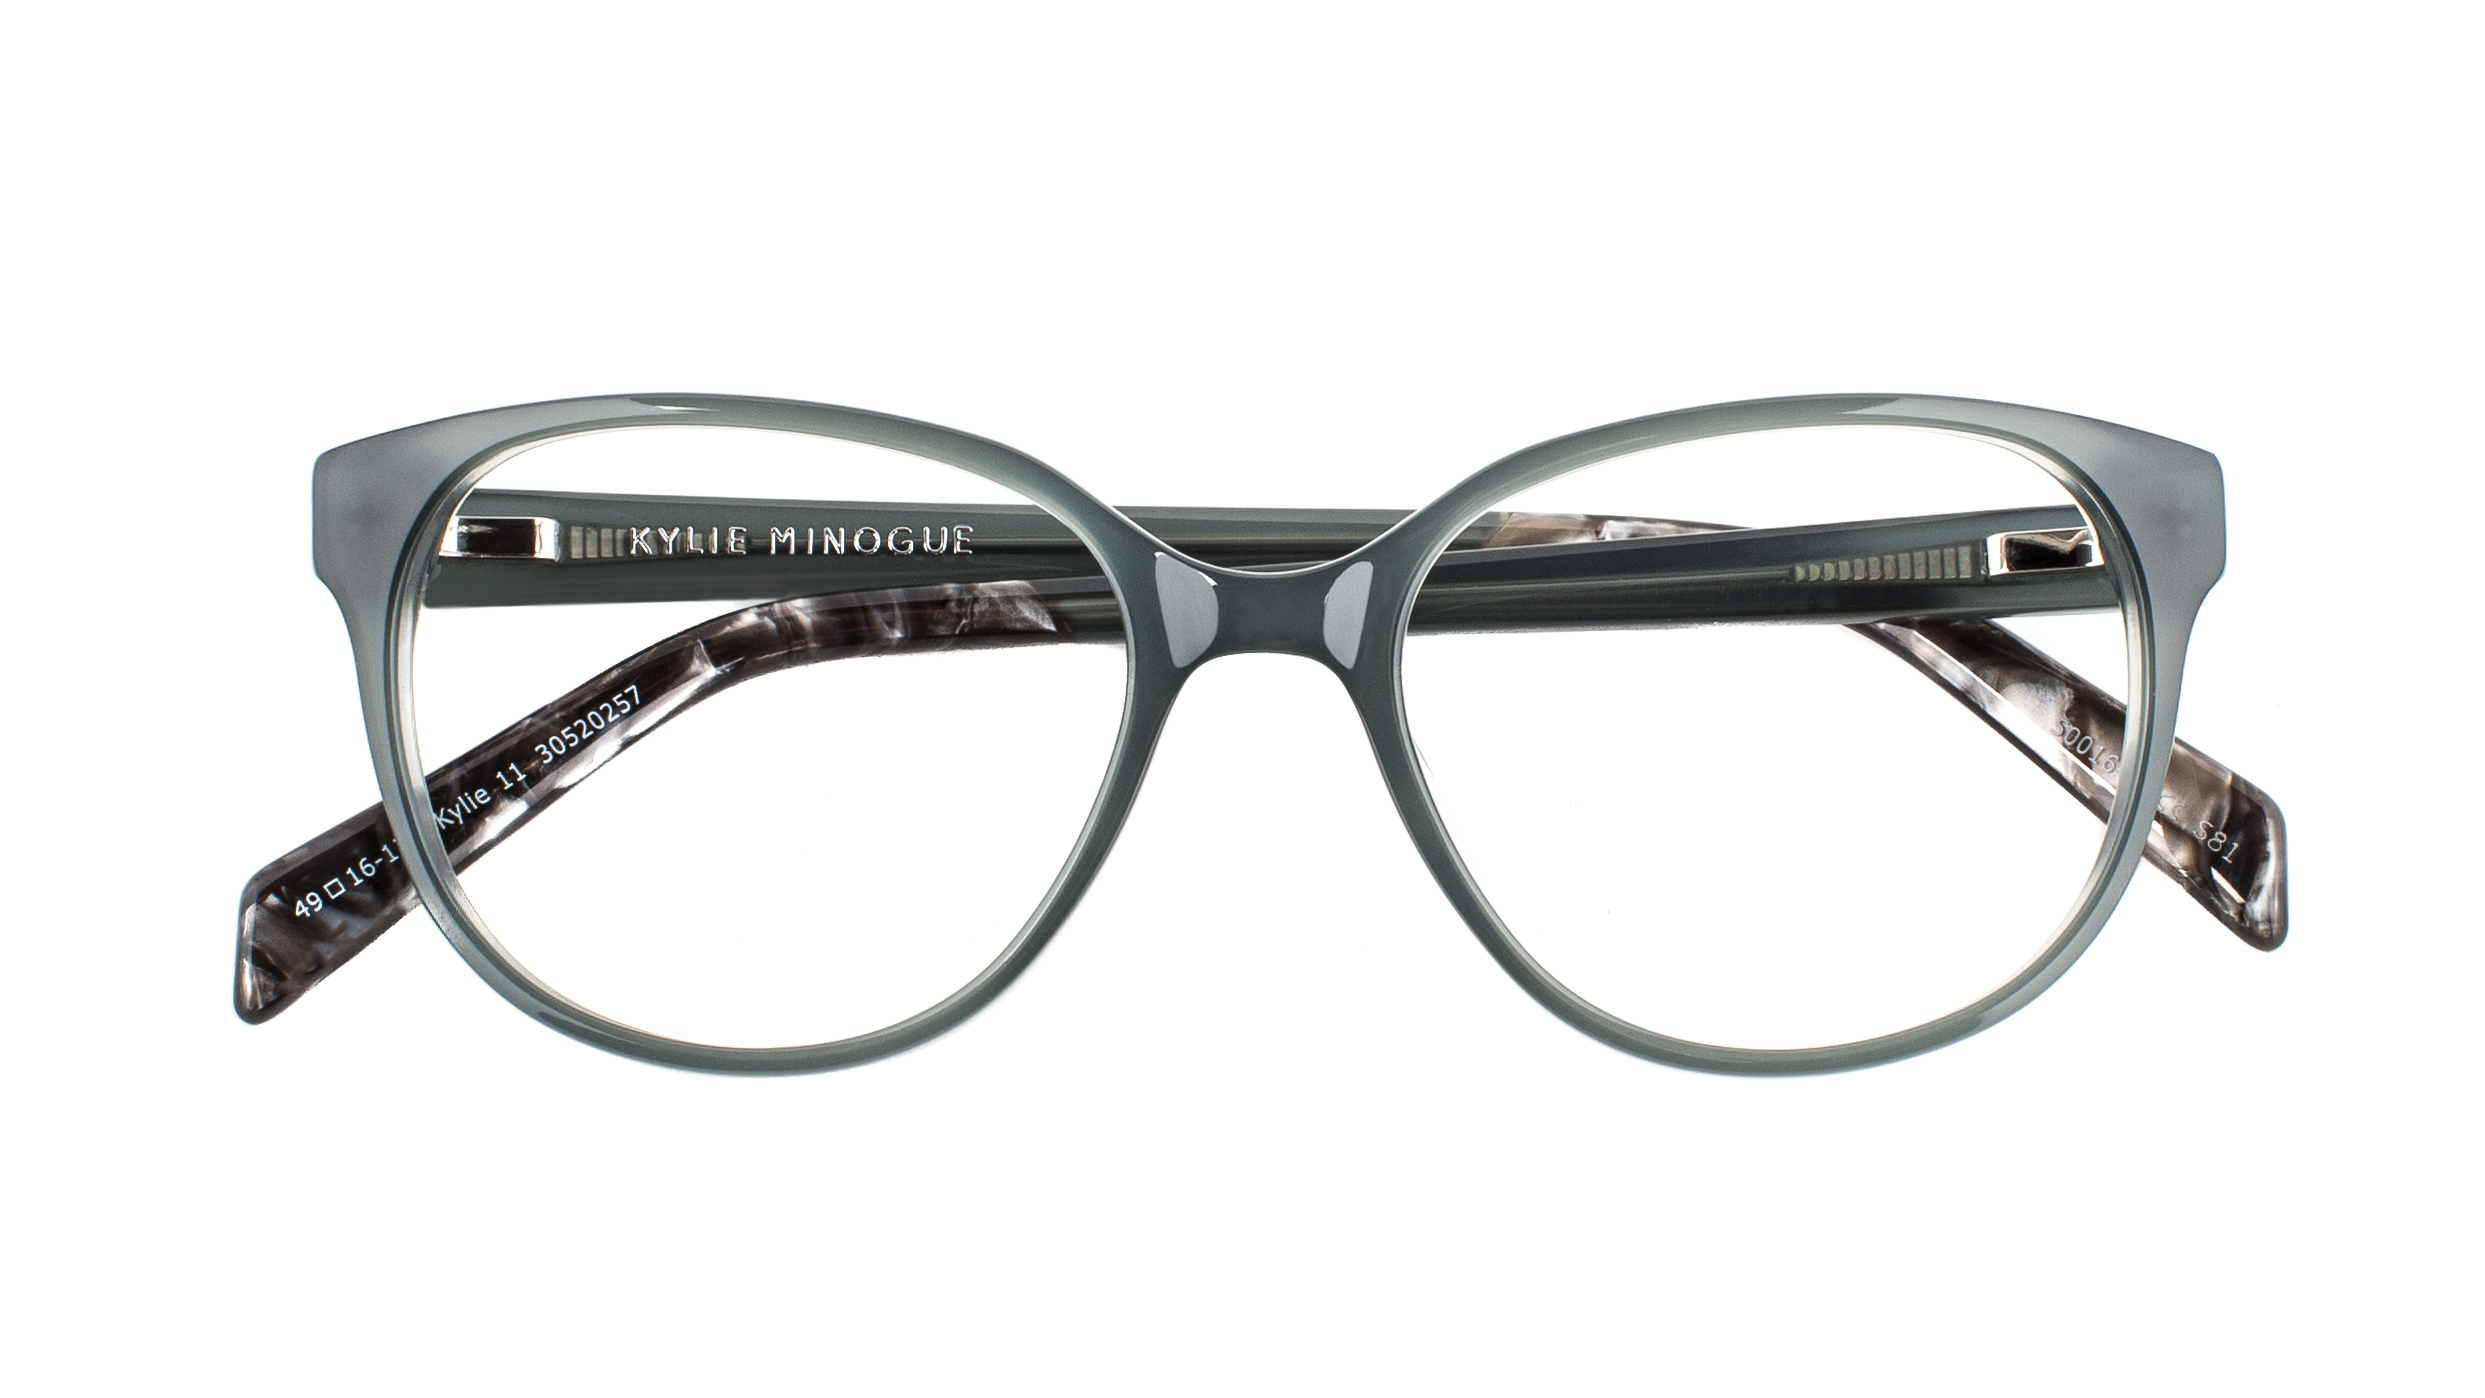 Kylie Minogue Eyewear_Kylie 11_SKU 30520257_RRP 2 pairs from $369